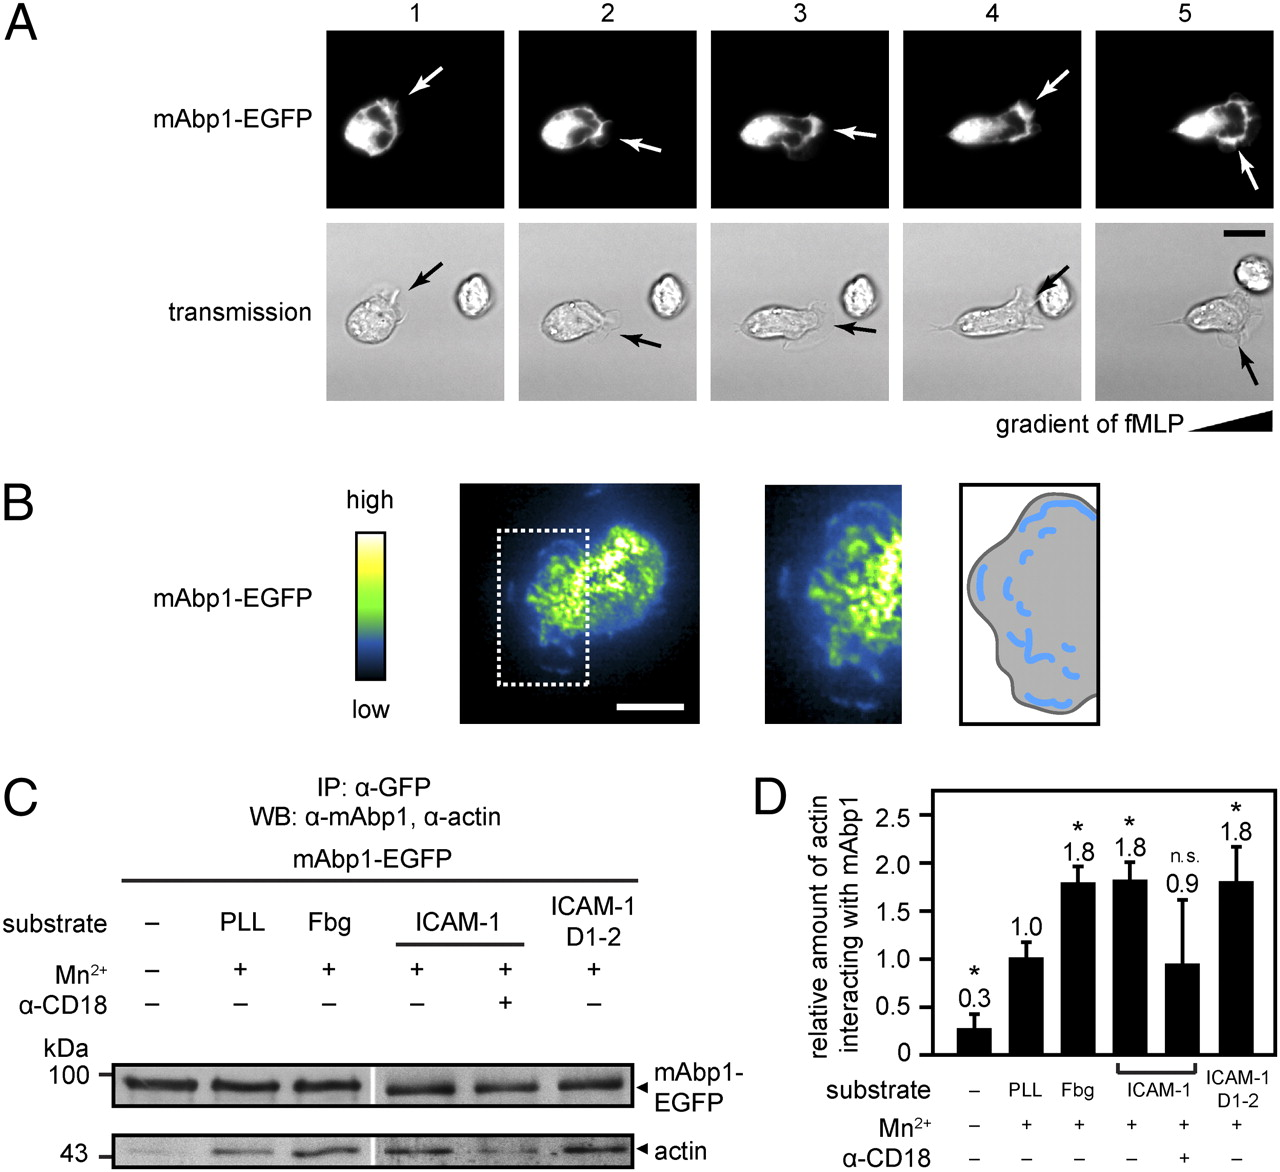 The Mammalian Actin Binding Protein 1 Is Critical For Spreading And